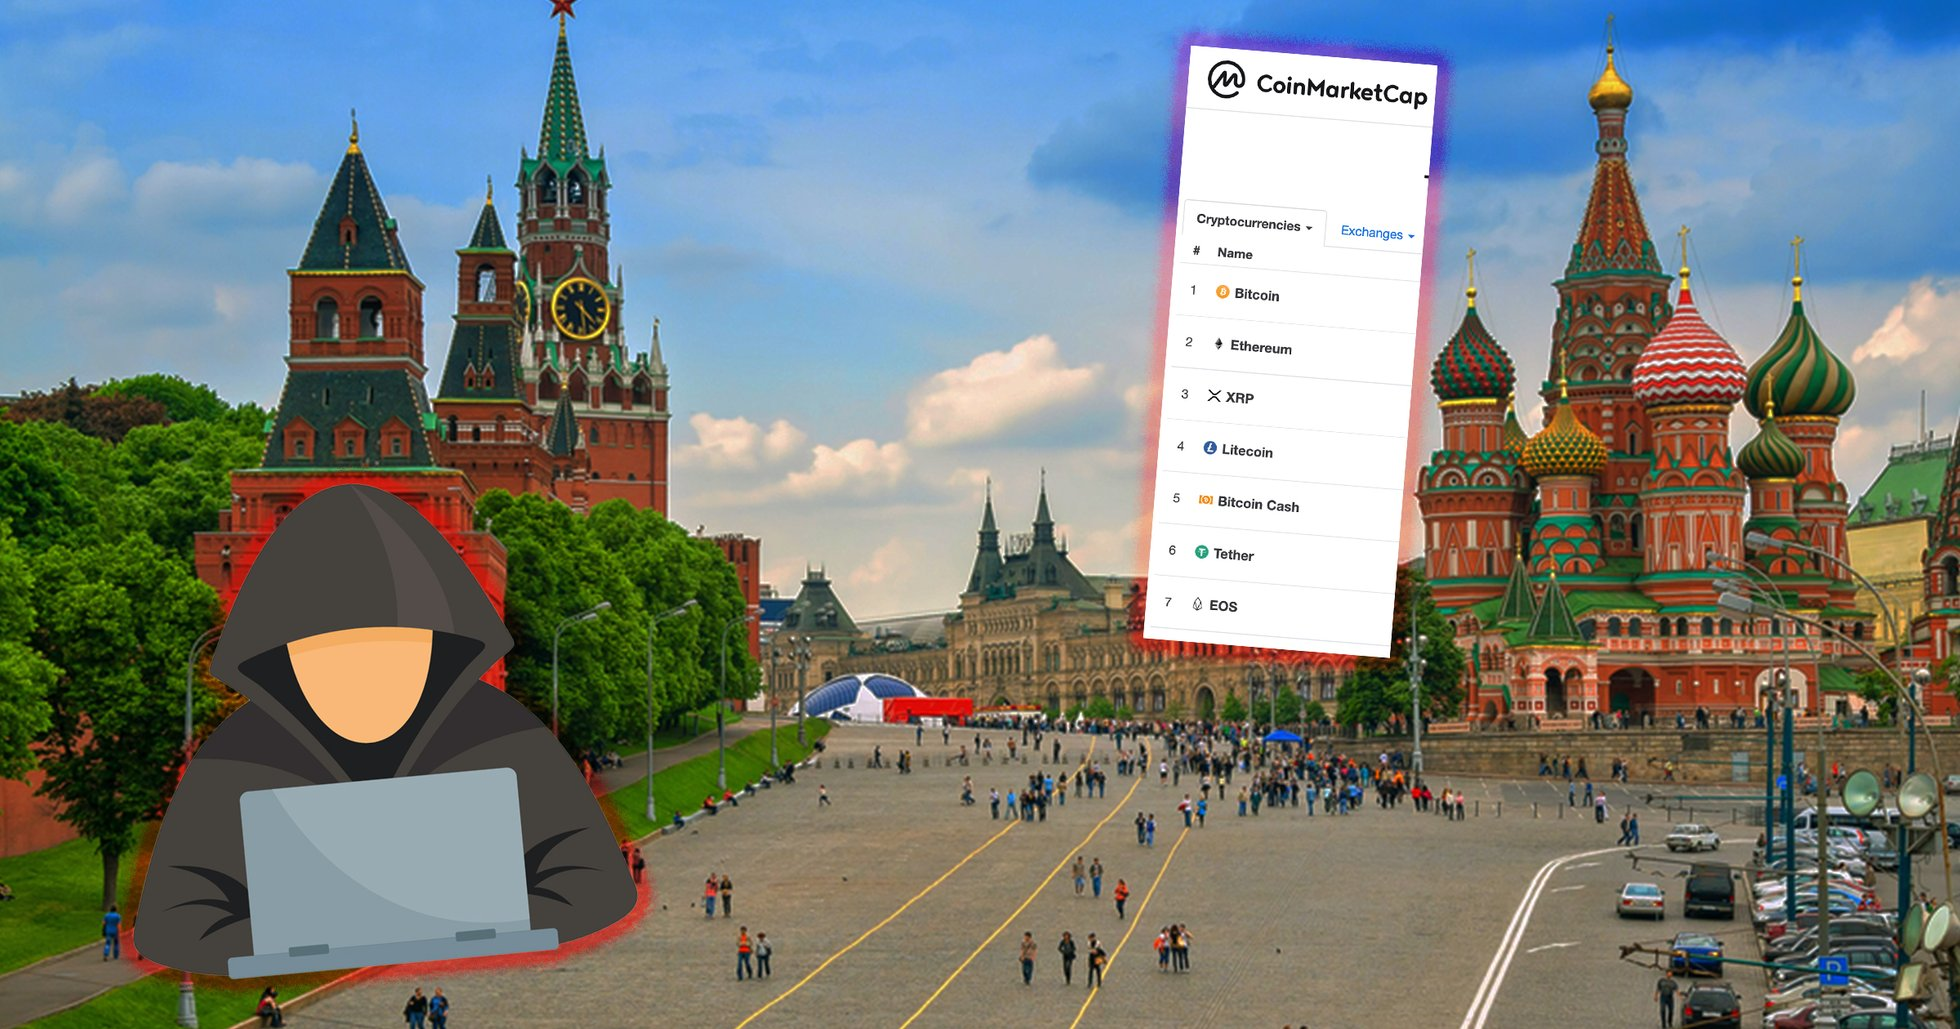 Russian company manipulates cryptocurrencies' trading volumes – for $15,000